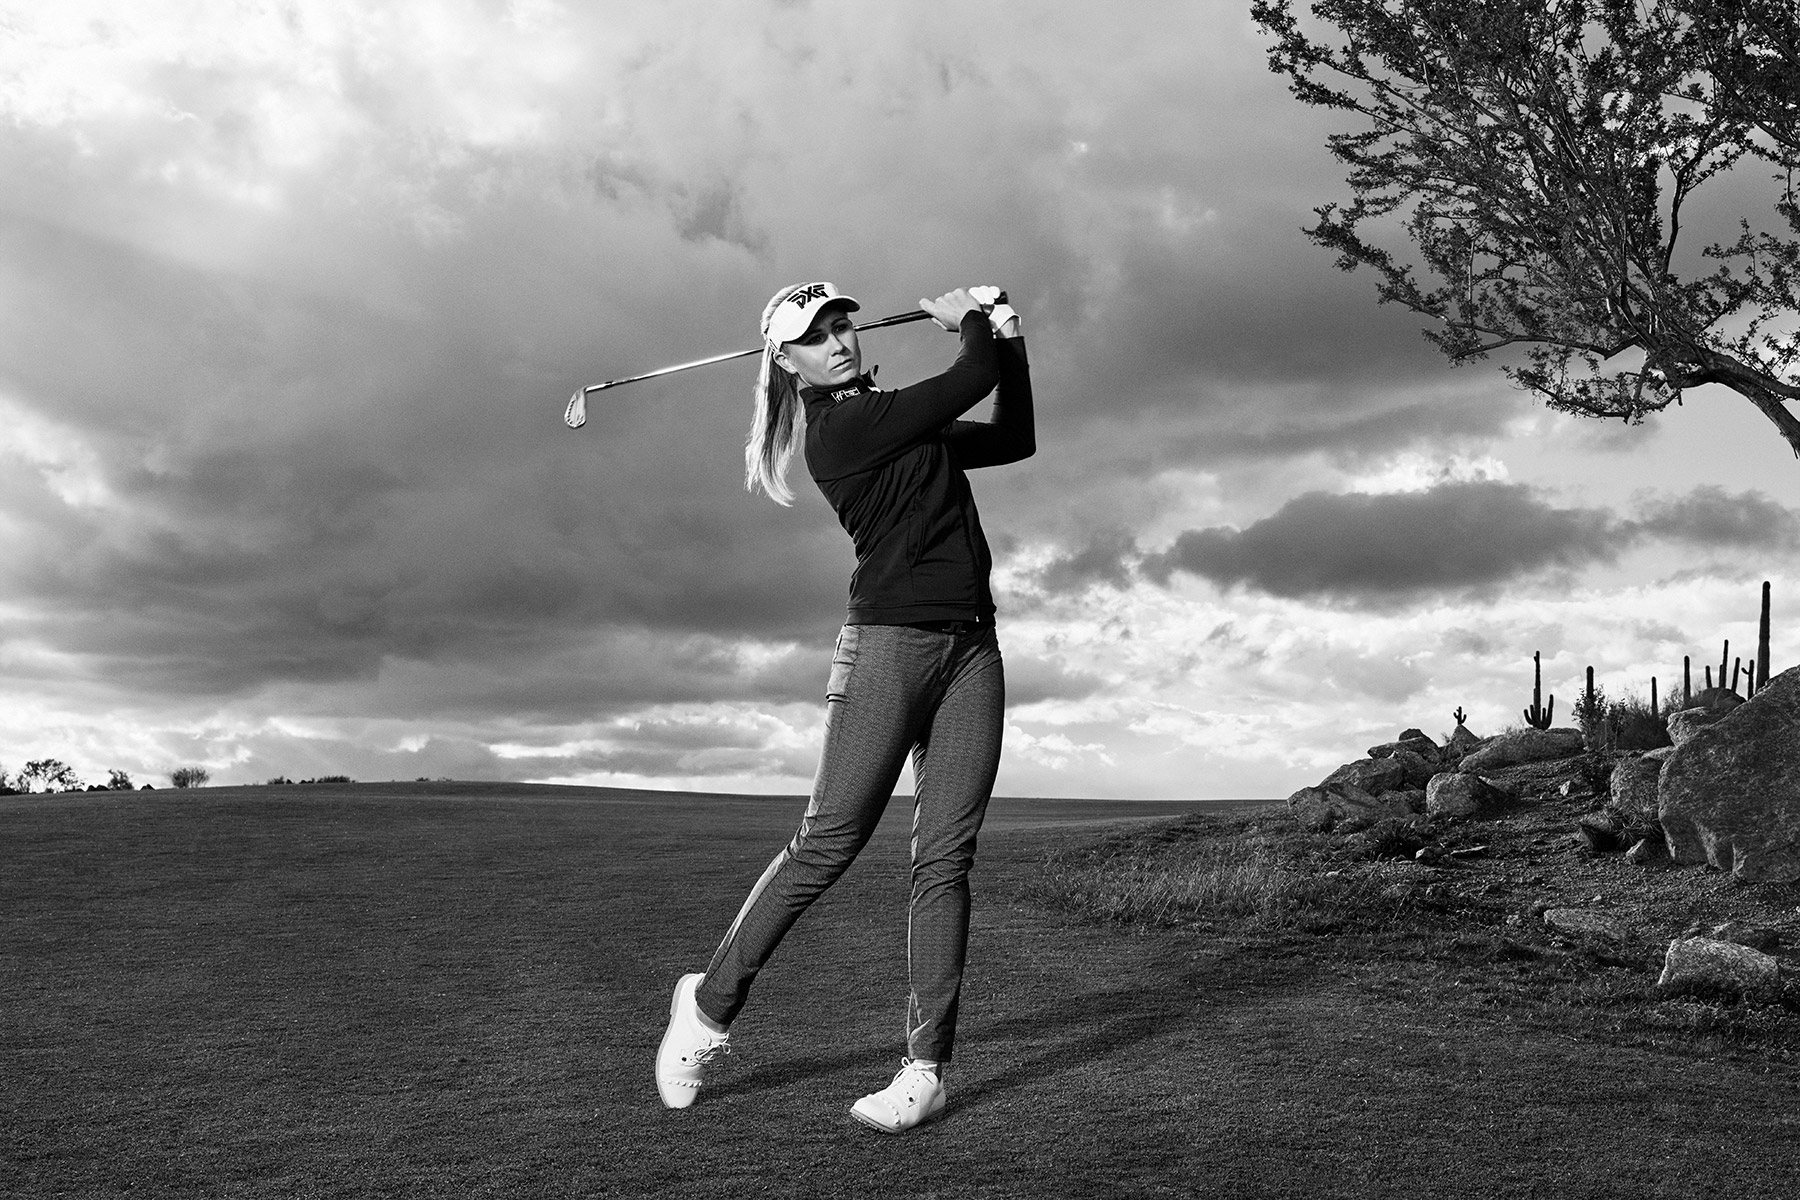 Ryan Otoole for PXG Golf